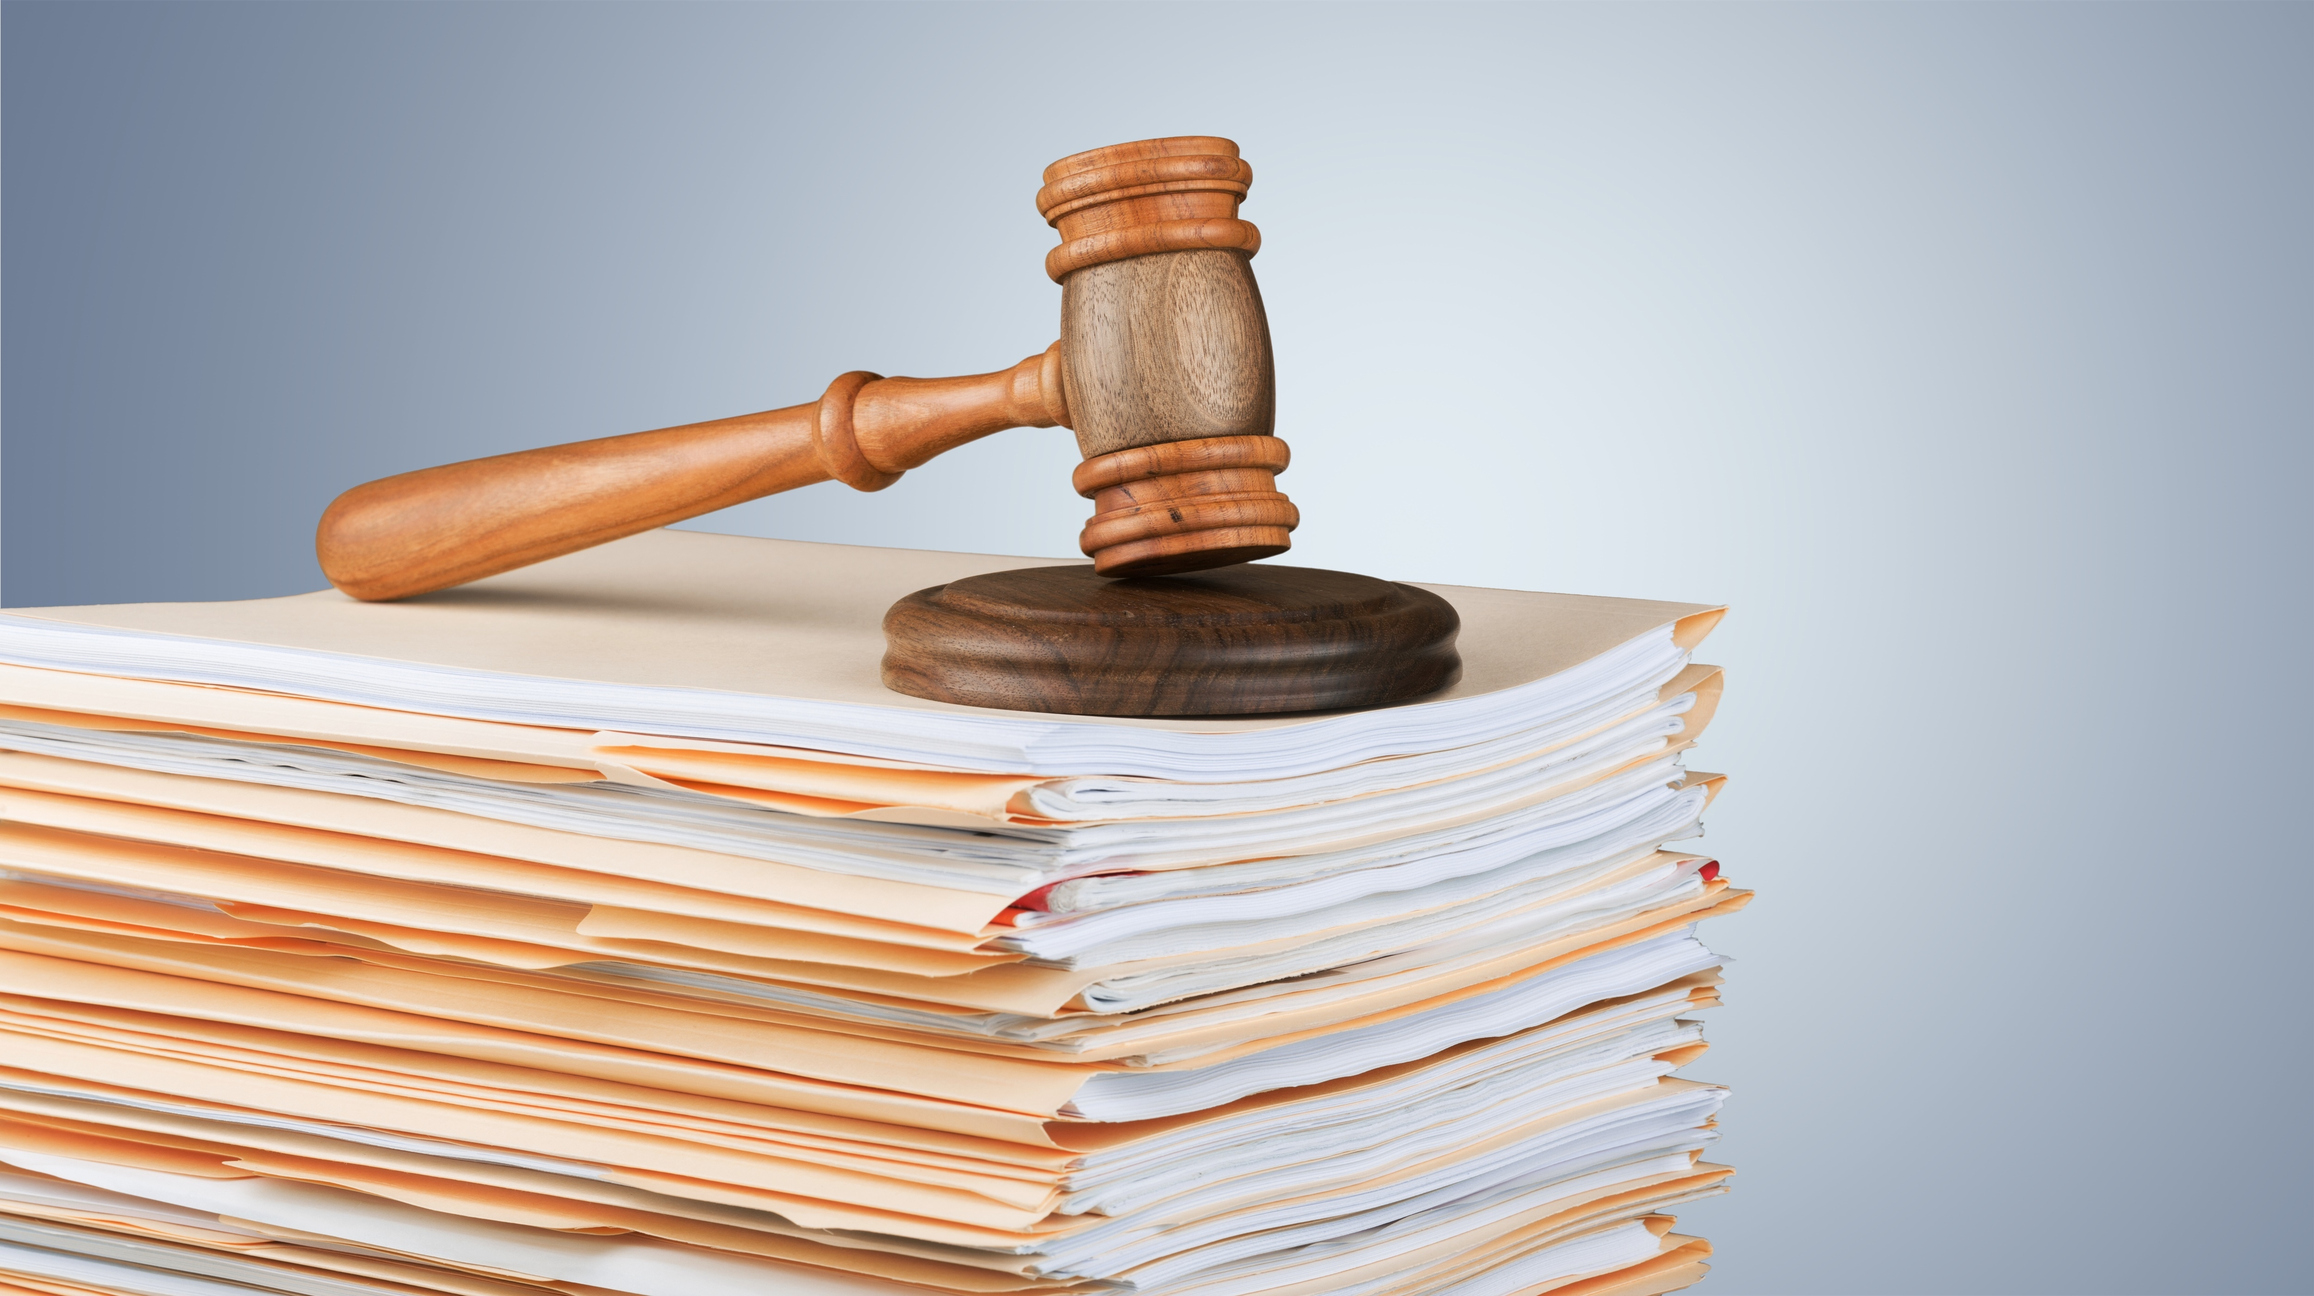 What Kind of Papers Does a Process Server Serve?